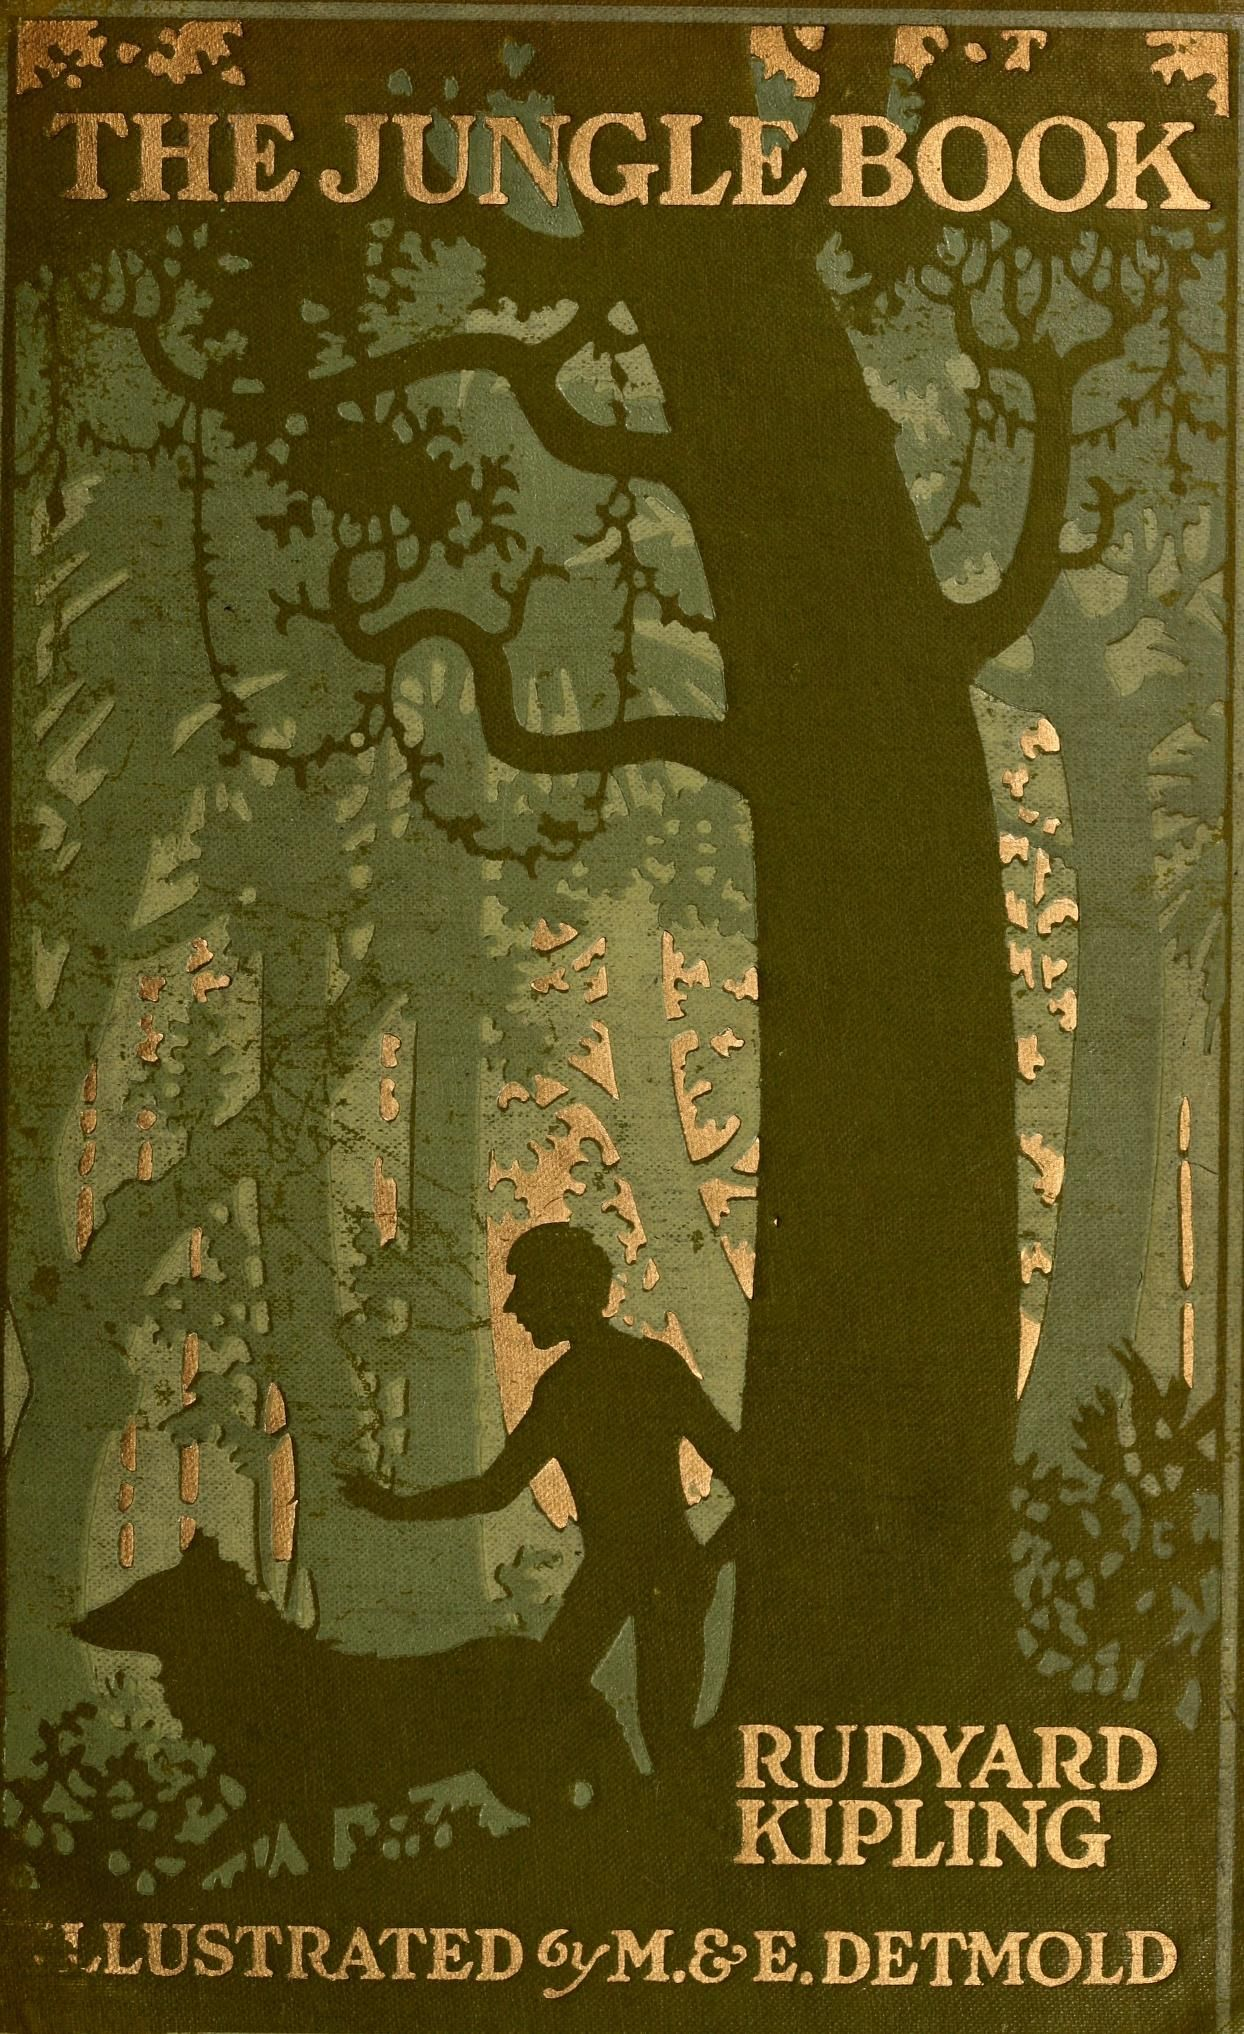 Rudyard Kipling, The Jungle Book, New York: The Century Co., 1913. Illustrations by Maurice and Edward Detmold.